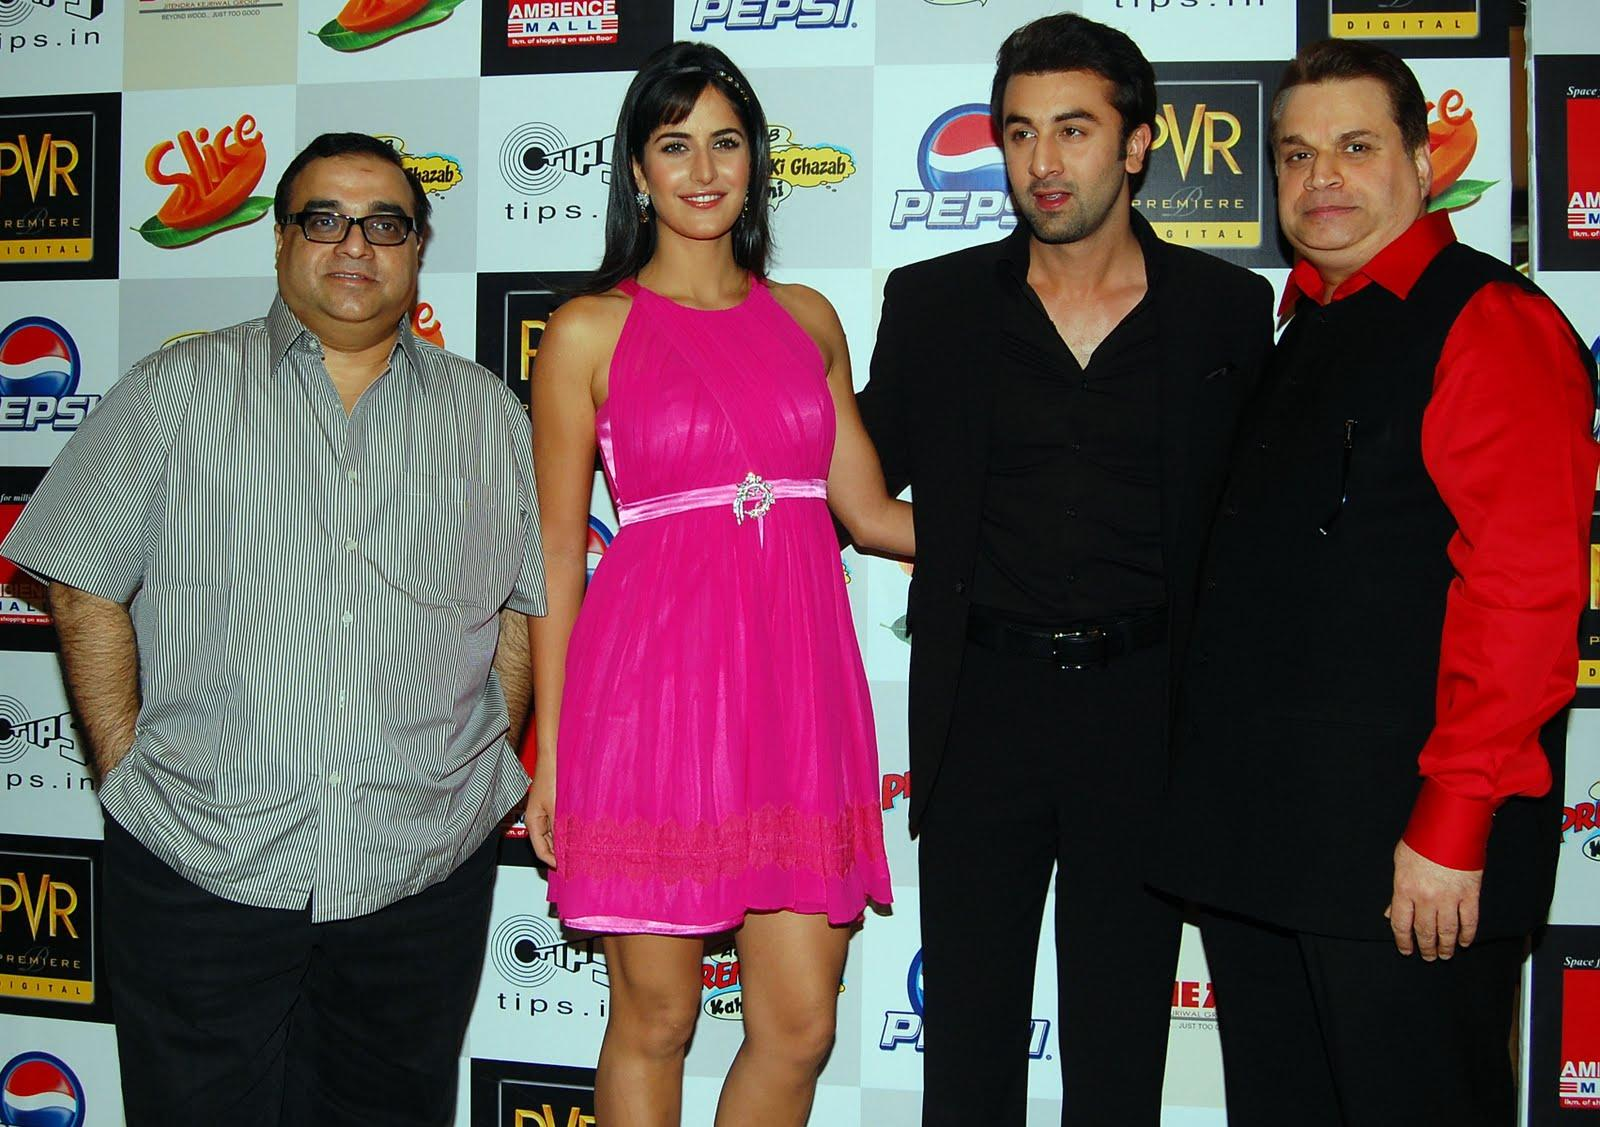 http://bollywood.celebden.com/wp-content/uploads/2009/11/Red-Carpet-Premiere-of-Ajab-Prem-Ki-Ghazab-Kahani-at-PVR-Ambience-Mall-DSC_1838.JPG